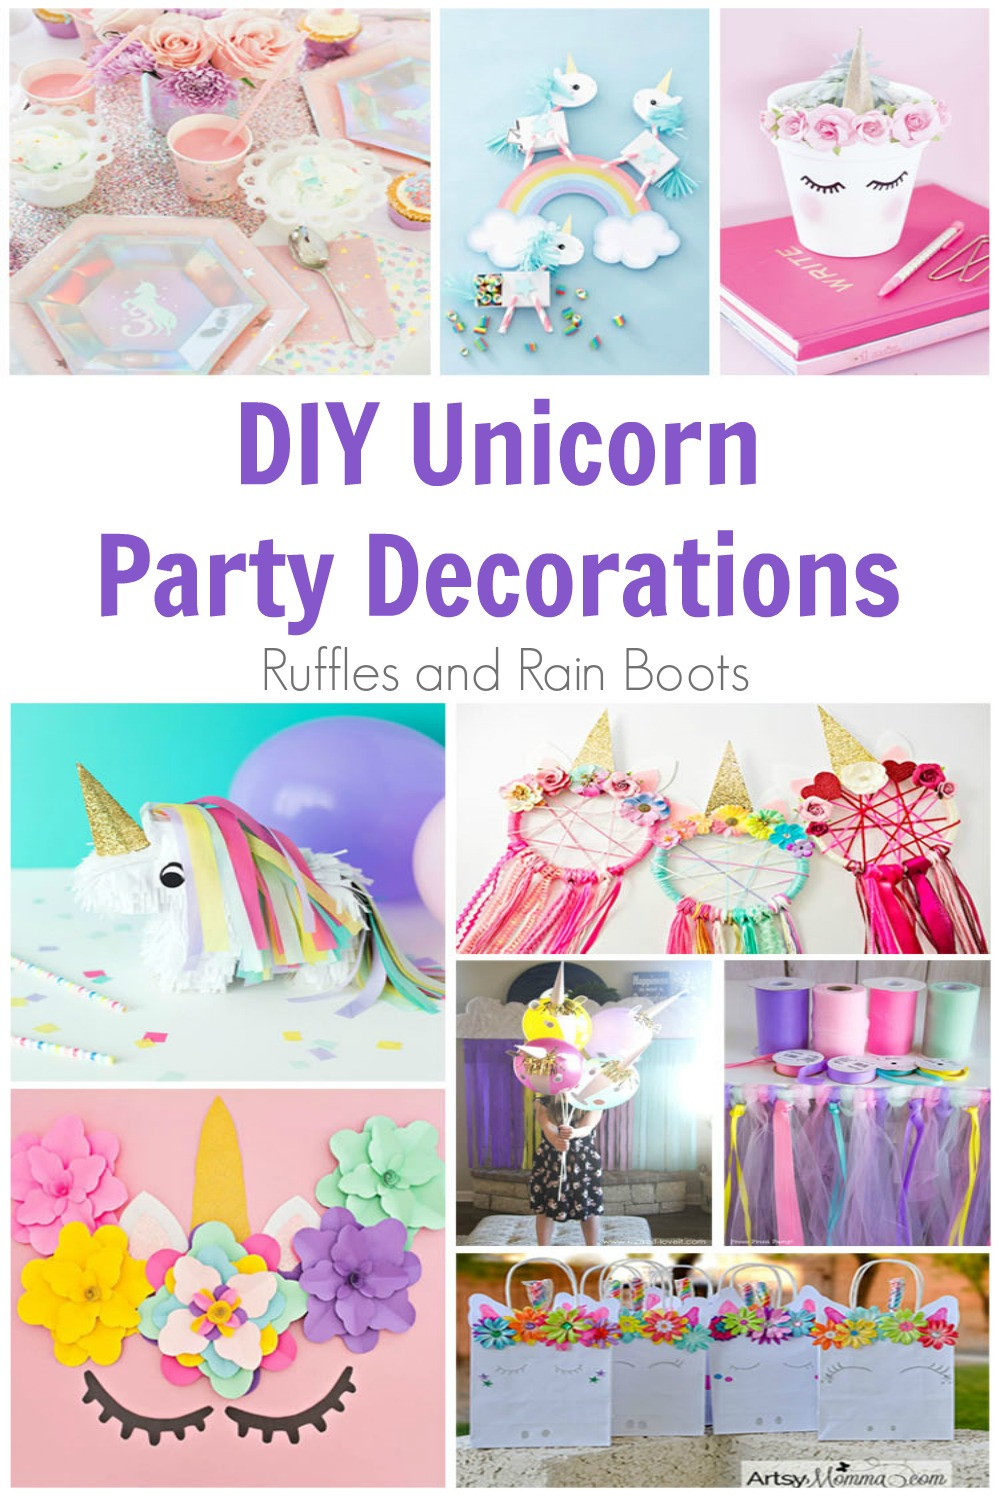 photo collage of various unicorn party decorations with the text DIY Unicorn Party Decorations